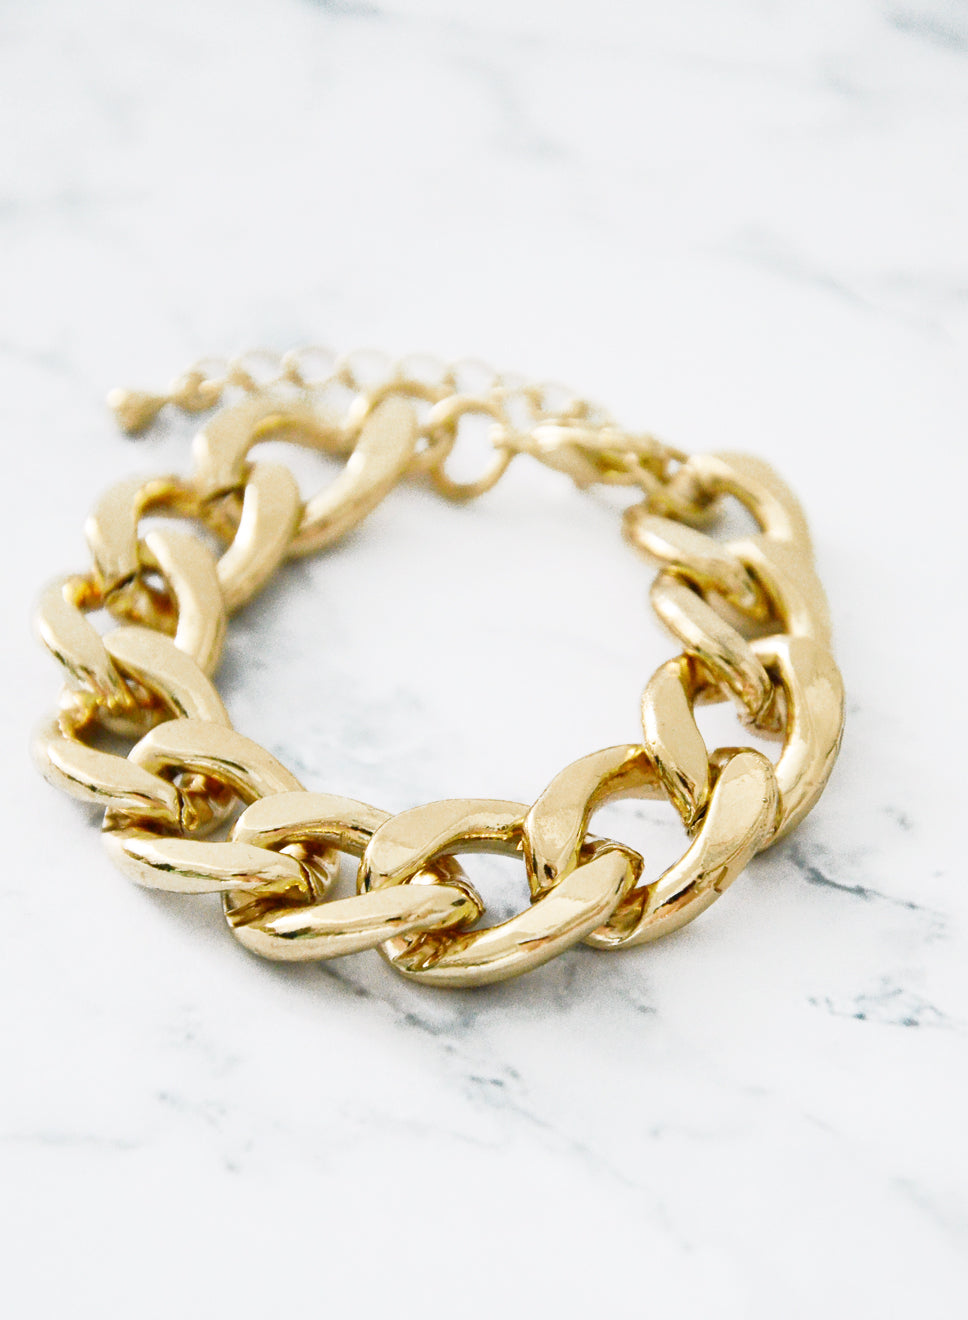 LYNX CHAIN BRACELET (GOLD) at $ 7.00 only sold at And Well Dressed Online Fashion Store Singapore